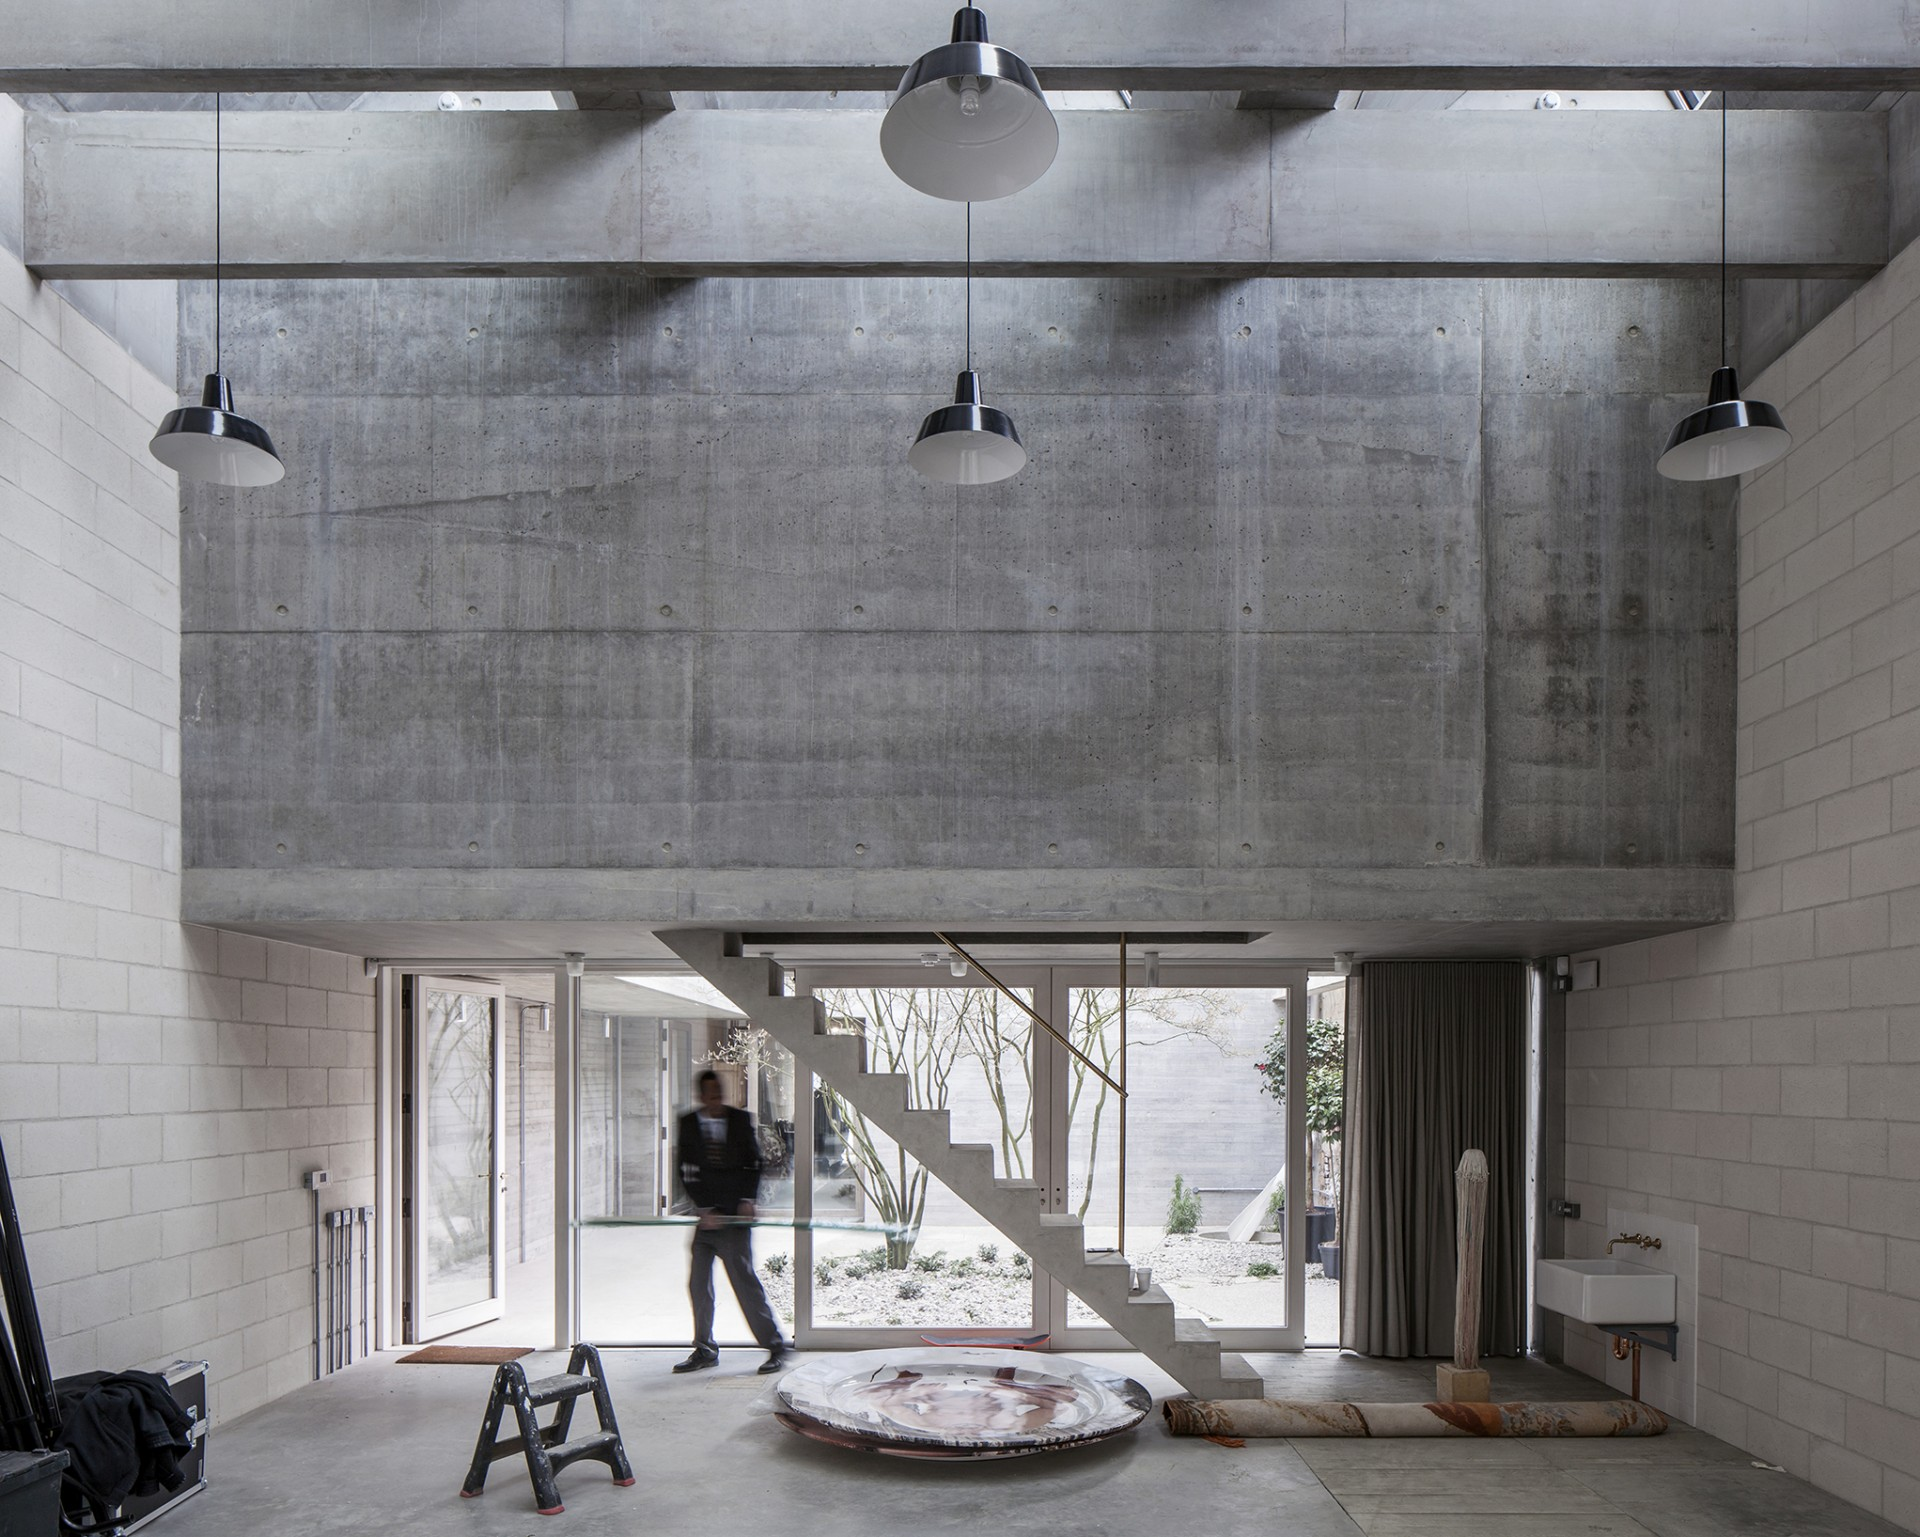 6a architects studio photo pour Juergen Teller Londres